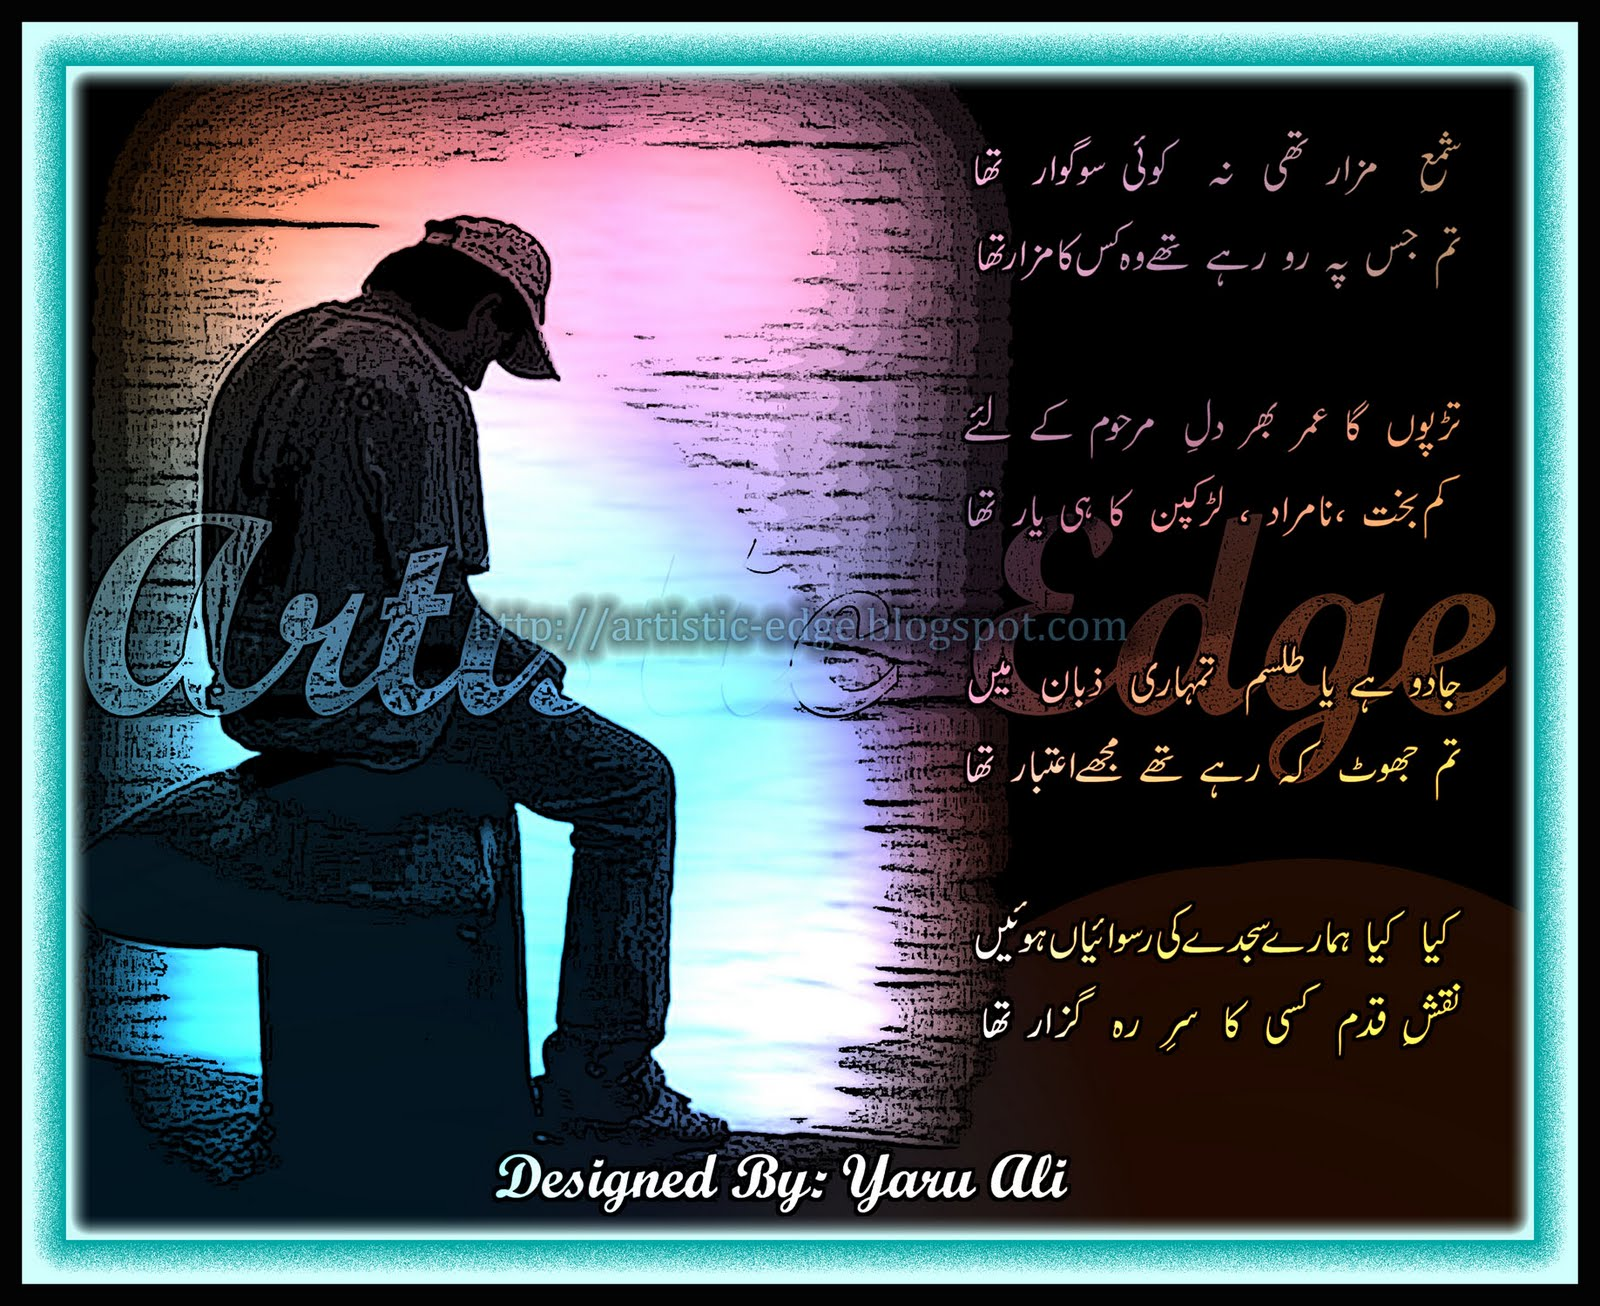 Artistic Edge Designed Urdu Ghazal Wallpaper | Tattoo ... - photo#9